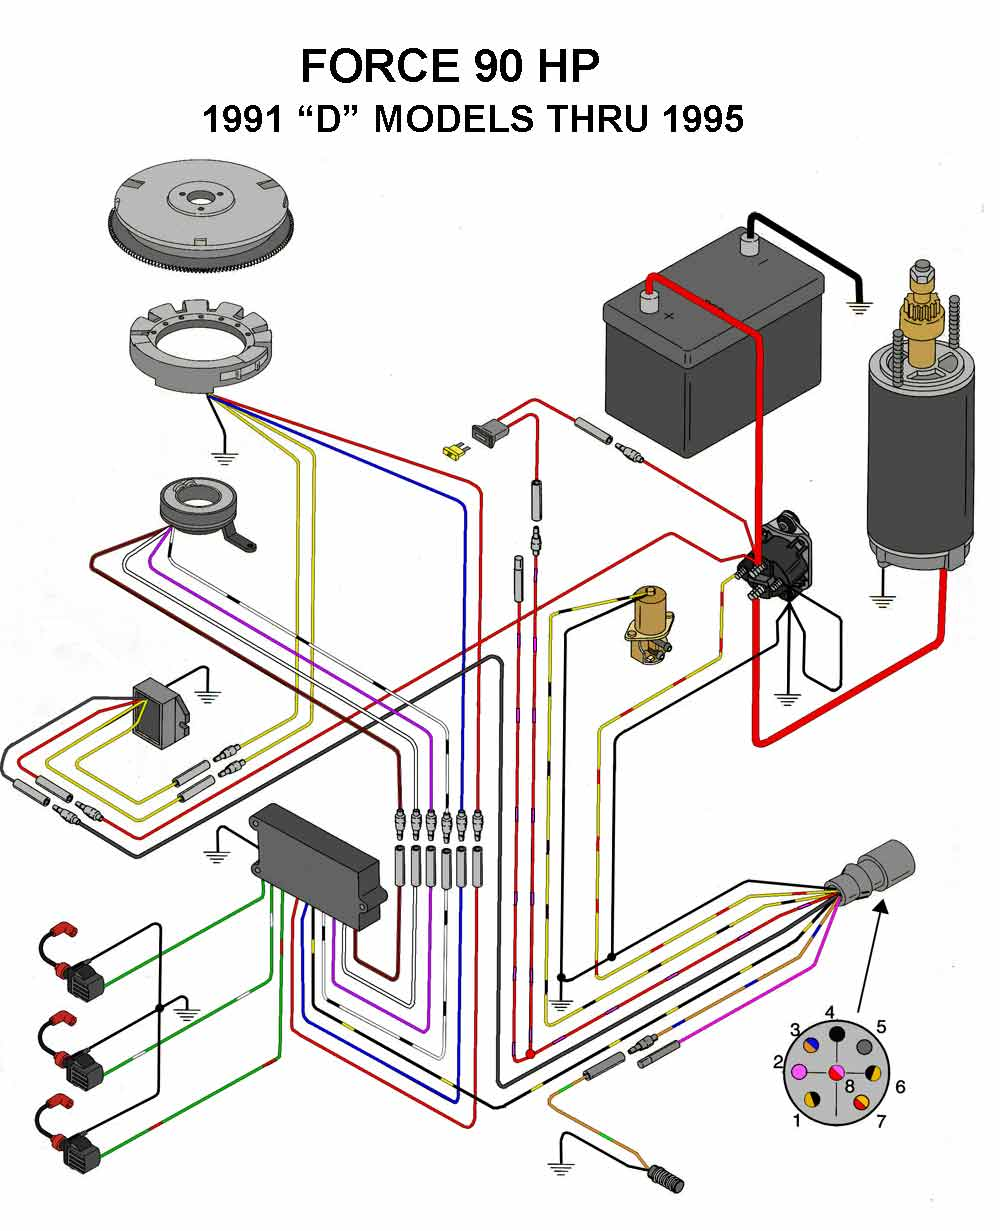 Force Outboard Ignition Wiring Diagram Library 40 Hp Mercury Hecho 120 125 Thru 1991a Models System